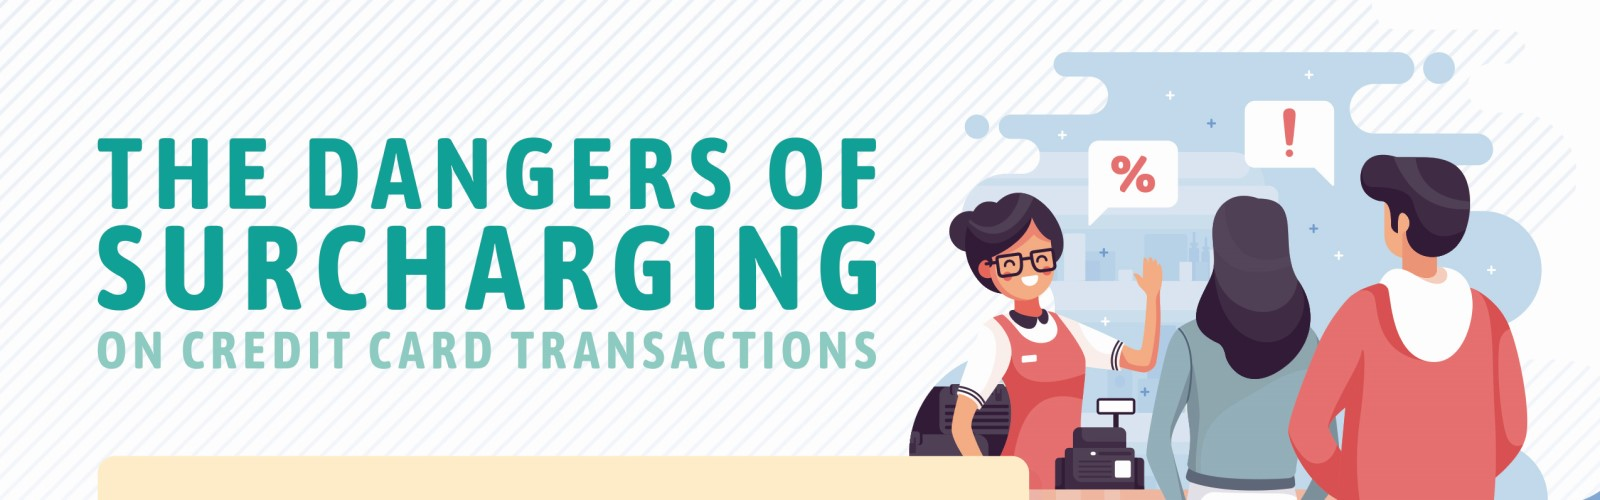 The Dangers of Surcharging (Infographic) - Banner